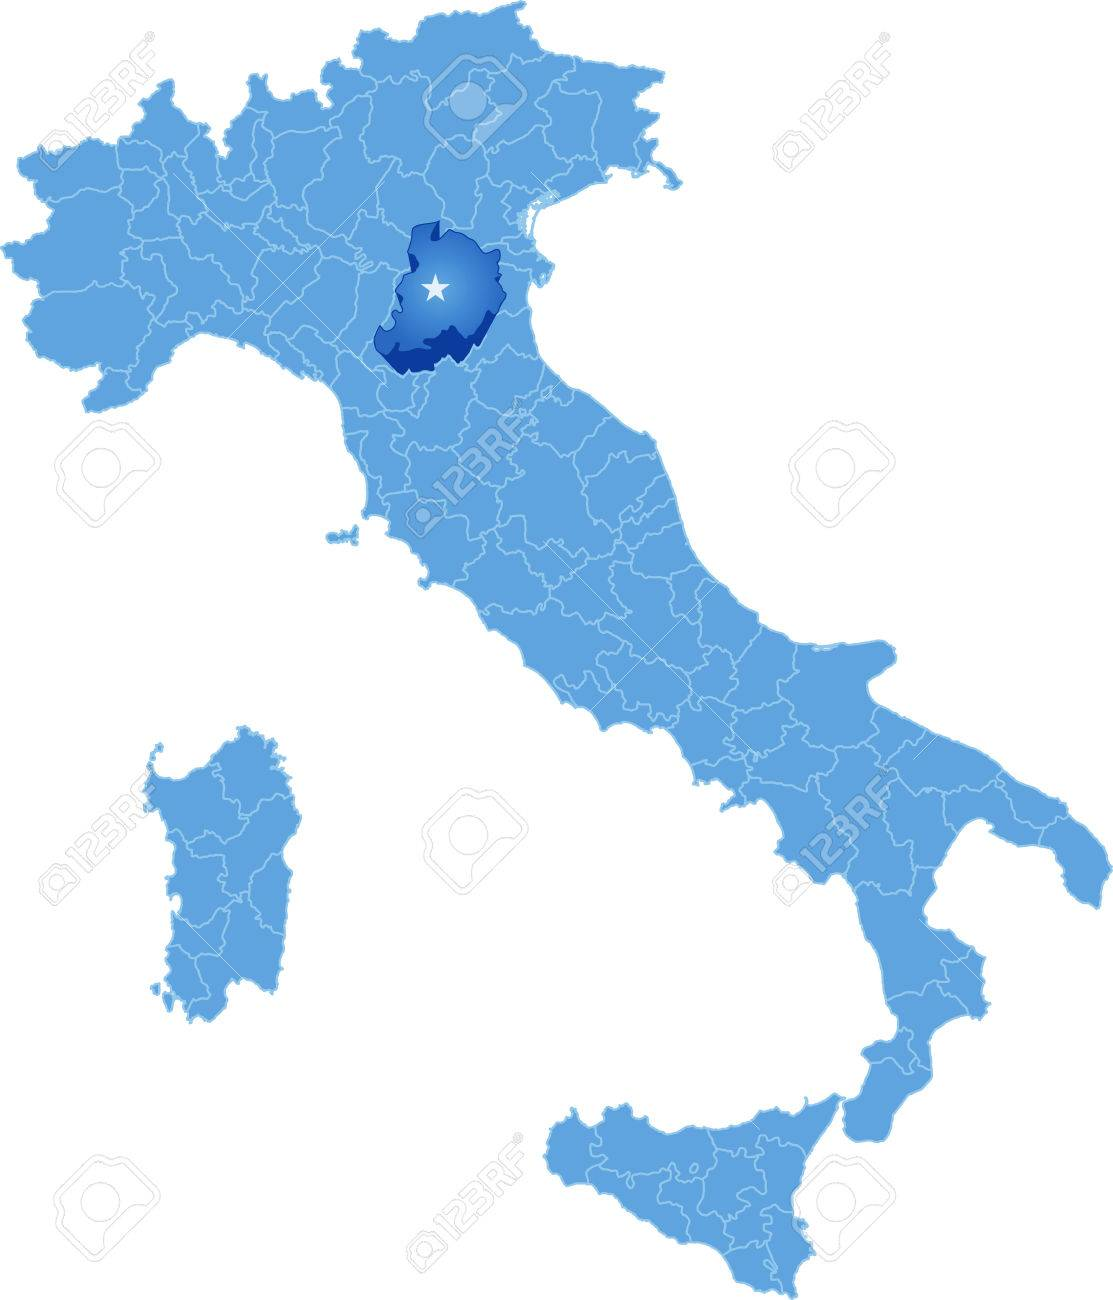 Map Of Italy Where Bologna Province Is Pulled Out Isolated On